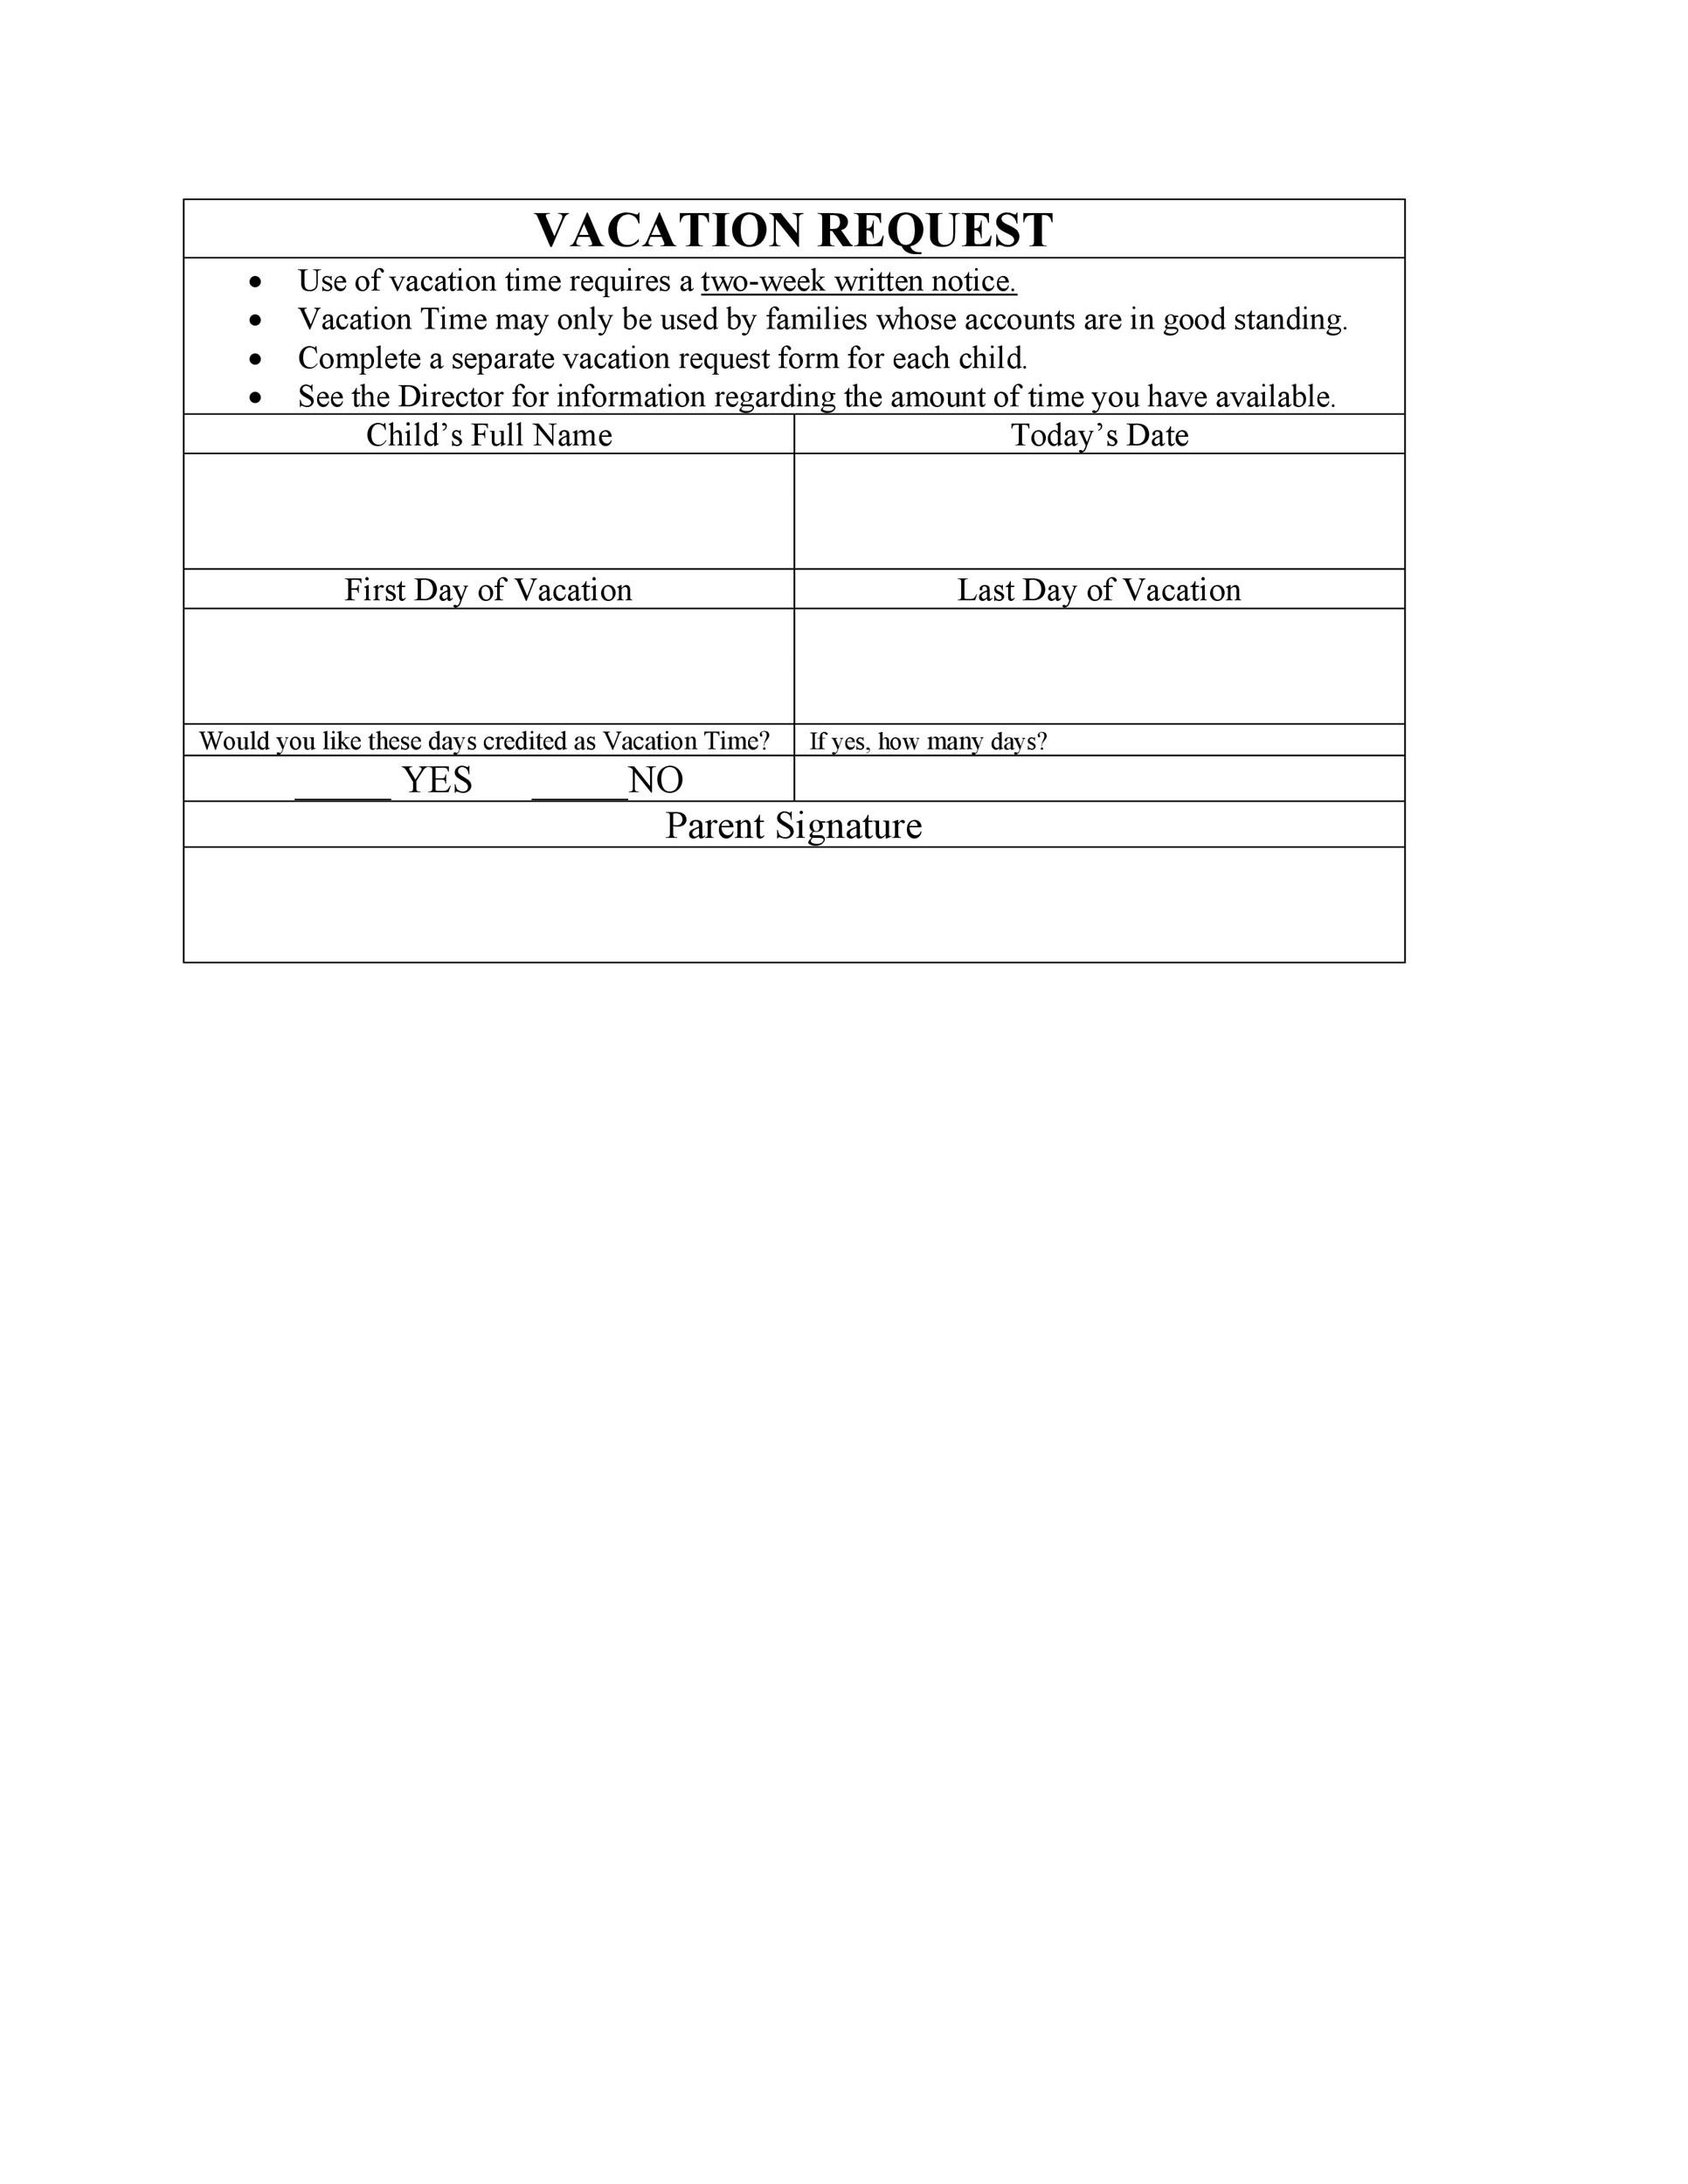 Free vacation request form 12